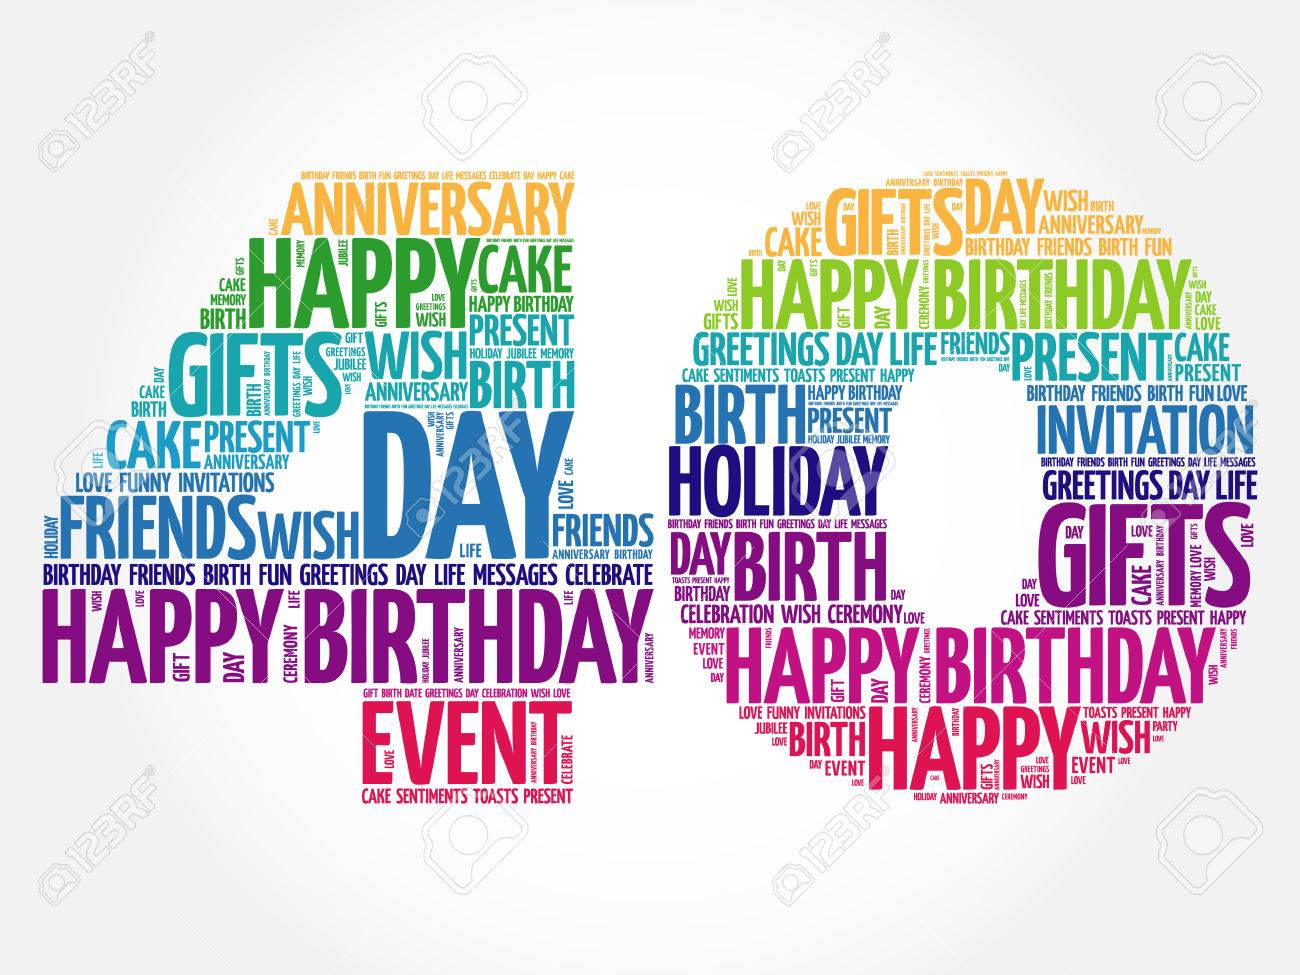 happy 40th birthday clipart free ; 62907252-happy-40th-birthday-word-cloud-collage-concept